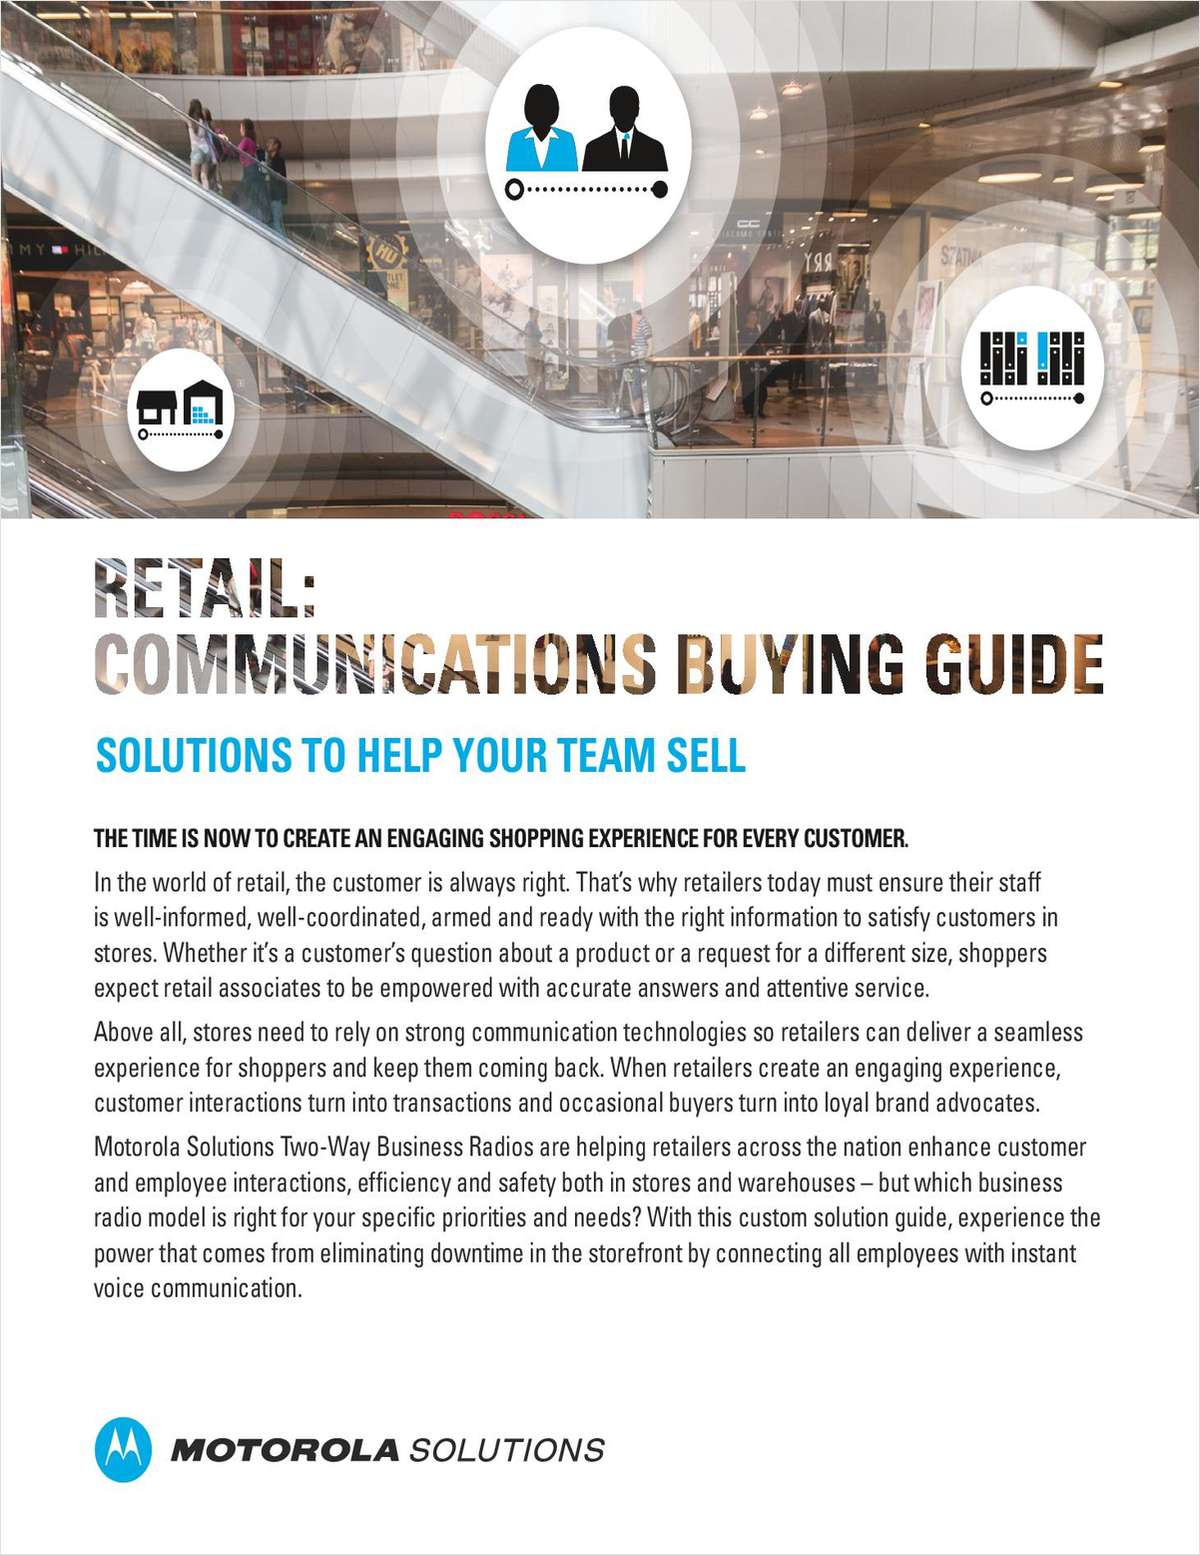 Retail: Communications Buying Guide